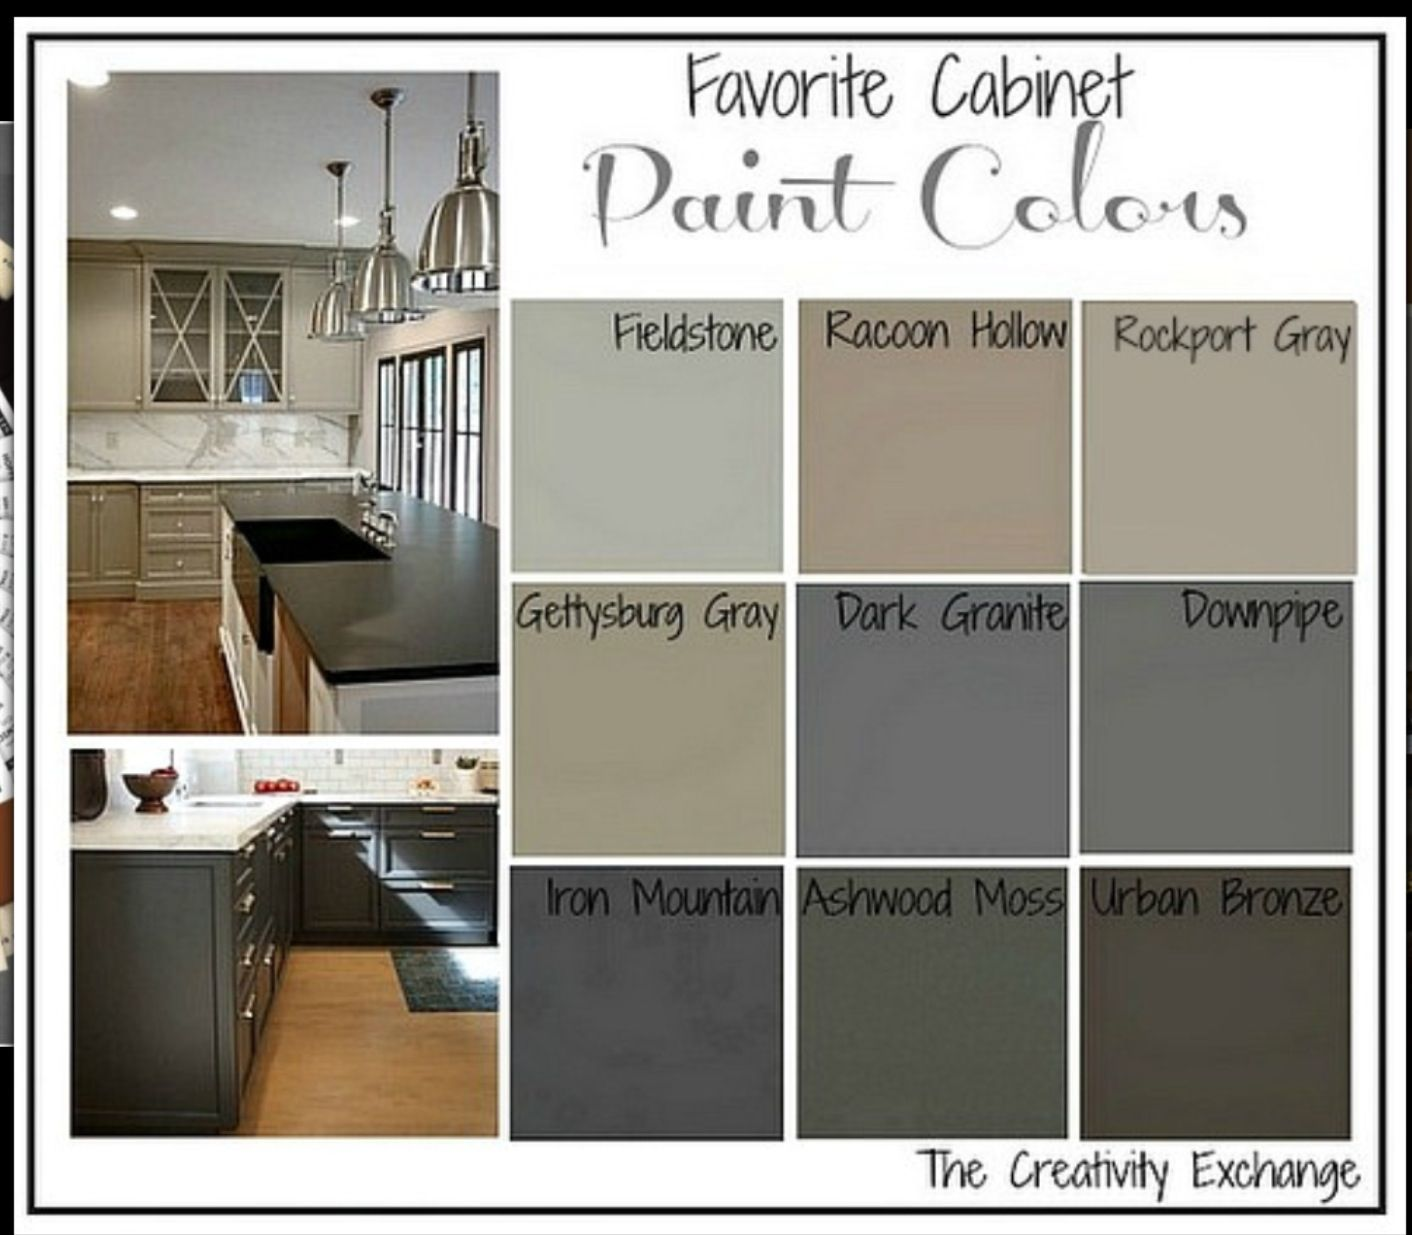 Kitchen cabinet colors - really like these colors, but no link ...